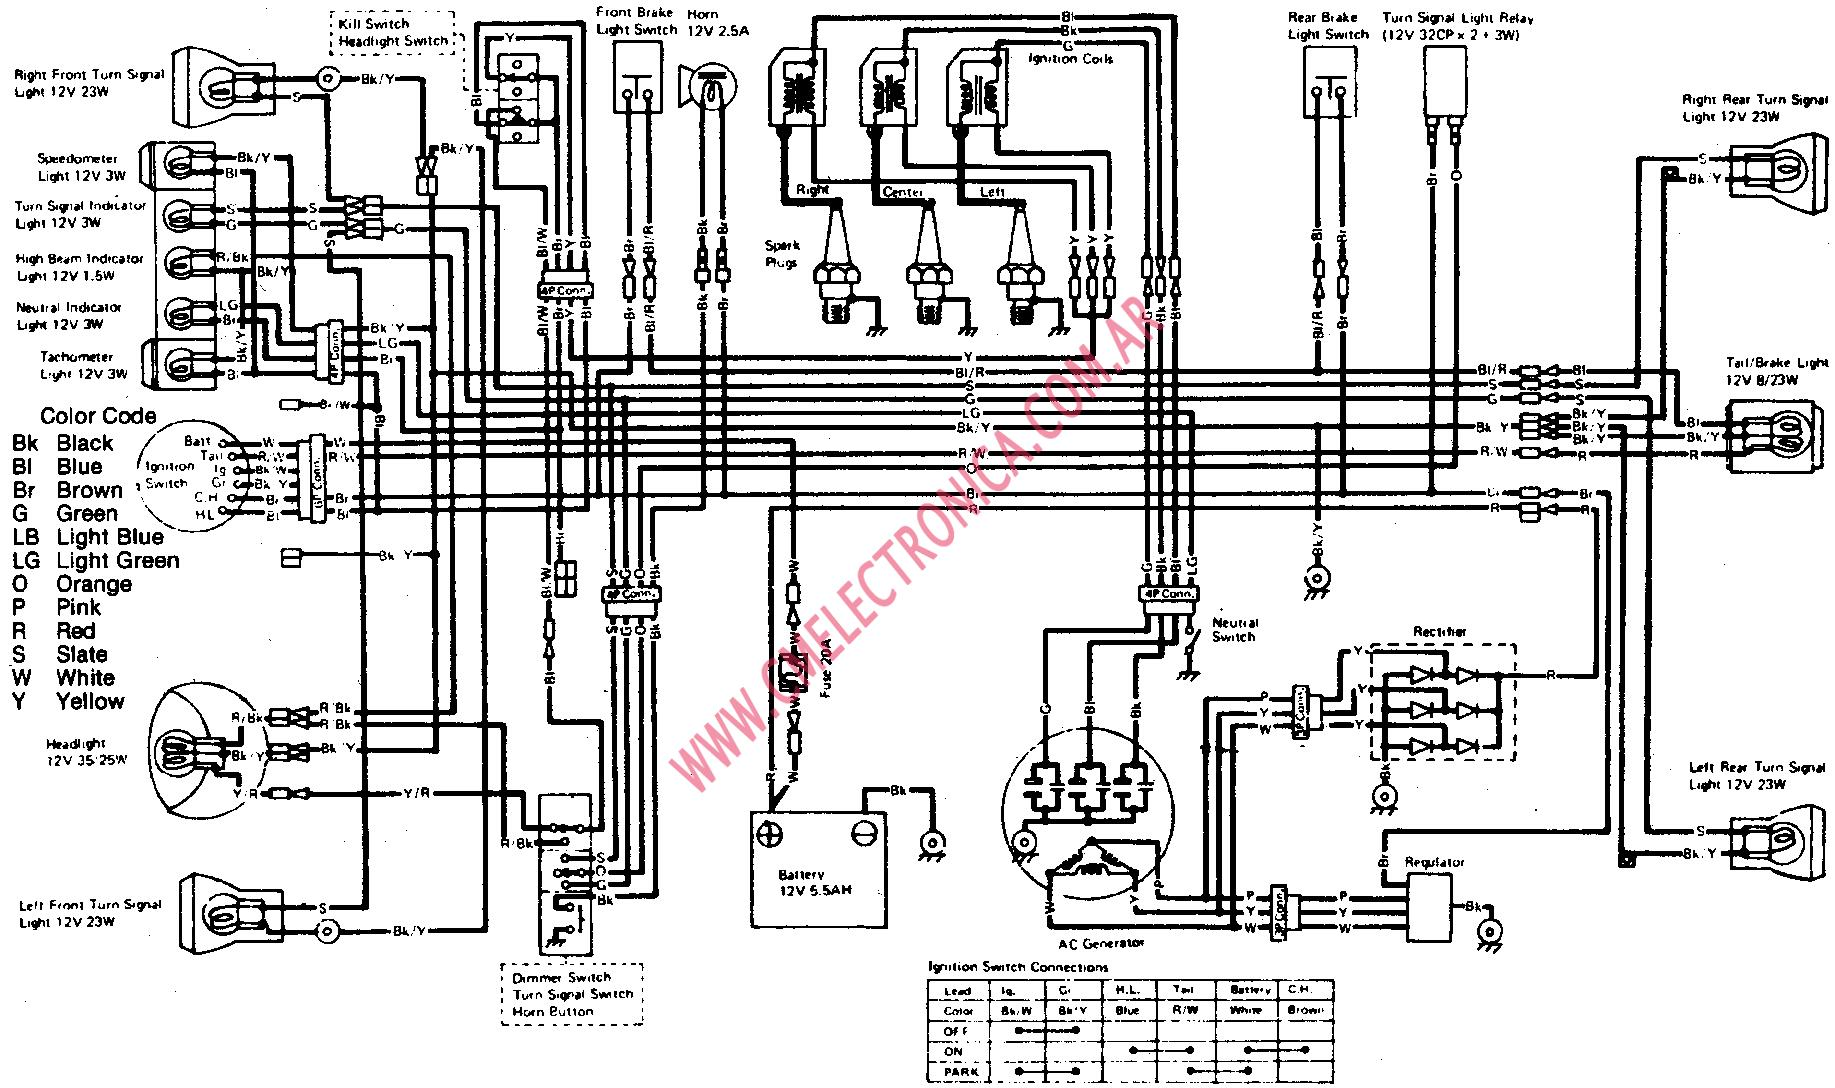 220 Bayou Atv Wiring Diagram - 2006 Jeep Wrangler Engine Diagram -  tomosa35.1982dodge.pistadelsole.it | Bayou 220 Wiring Schematic |  | Pista del Sole